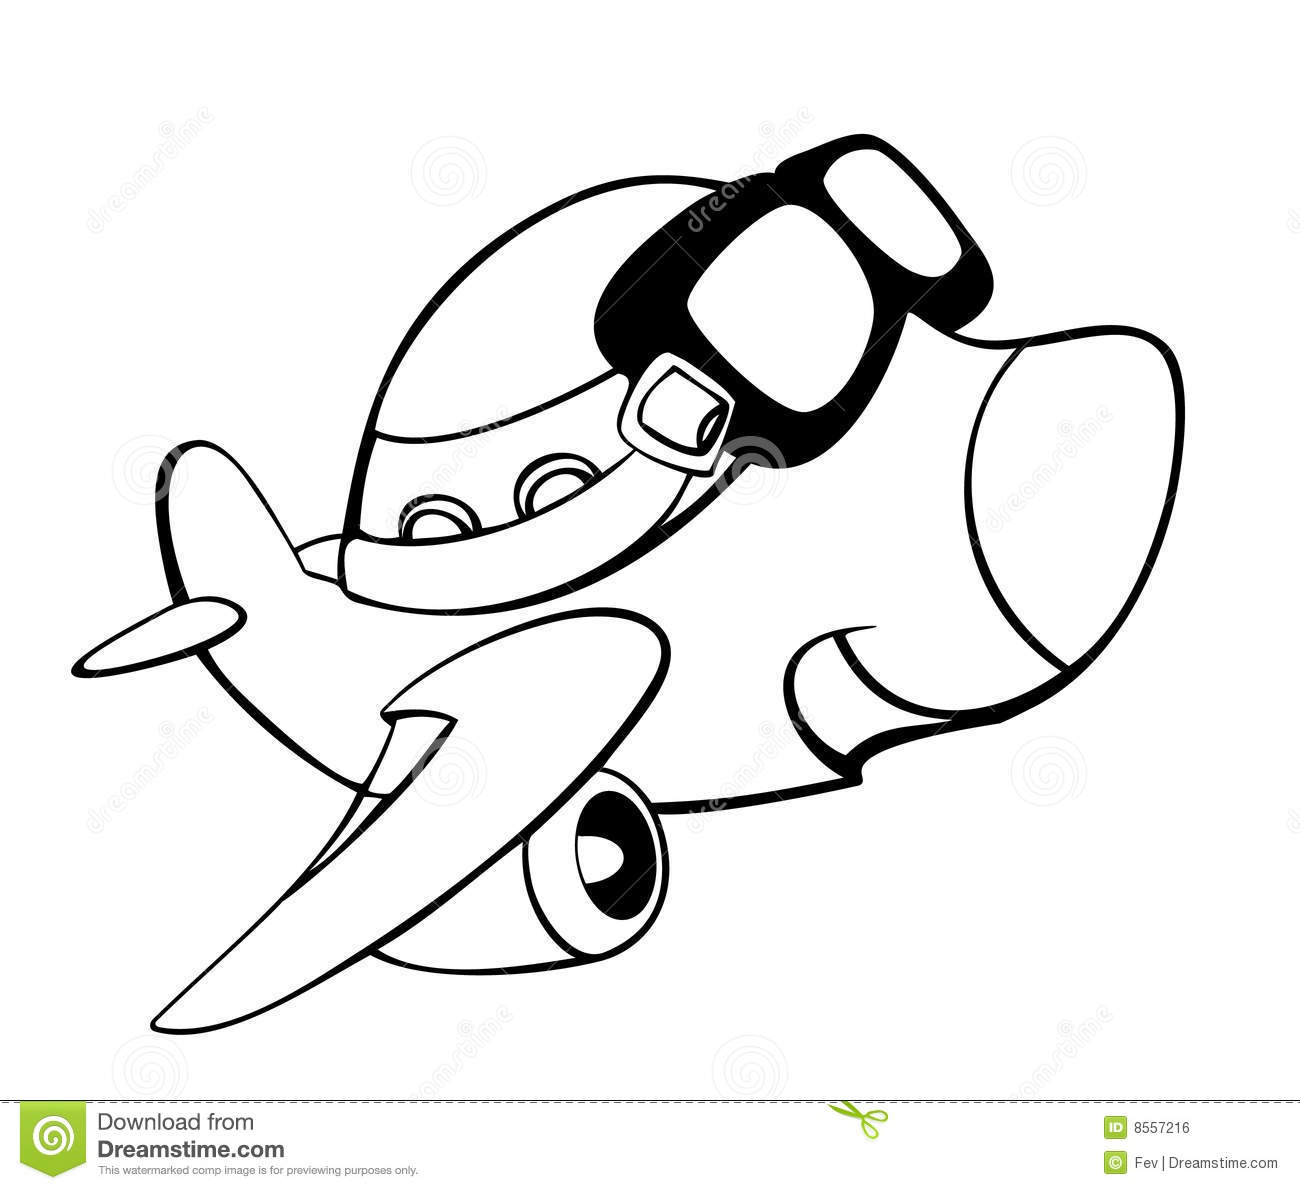 Dessin anim d 39 avion illustration de vecteur illustration - Dessins avions ...